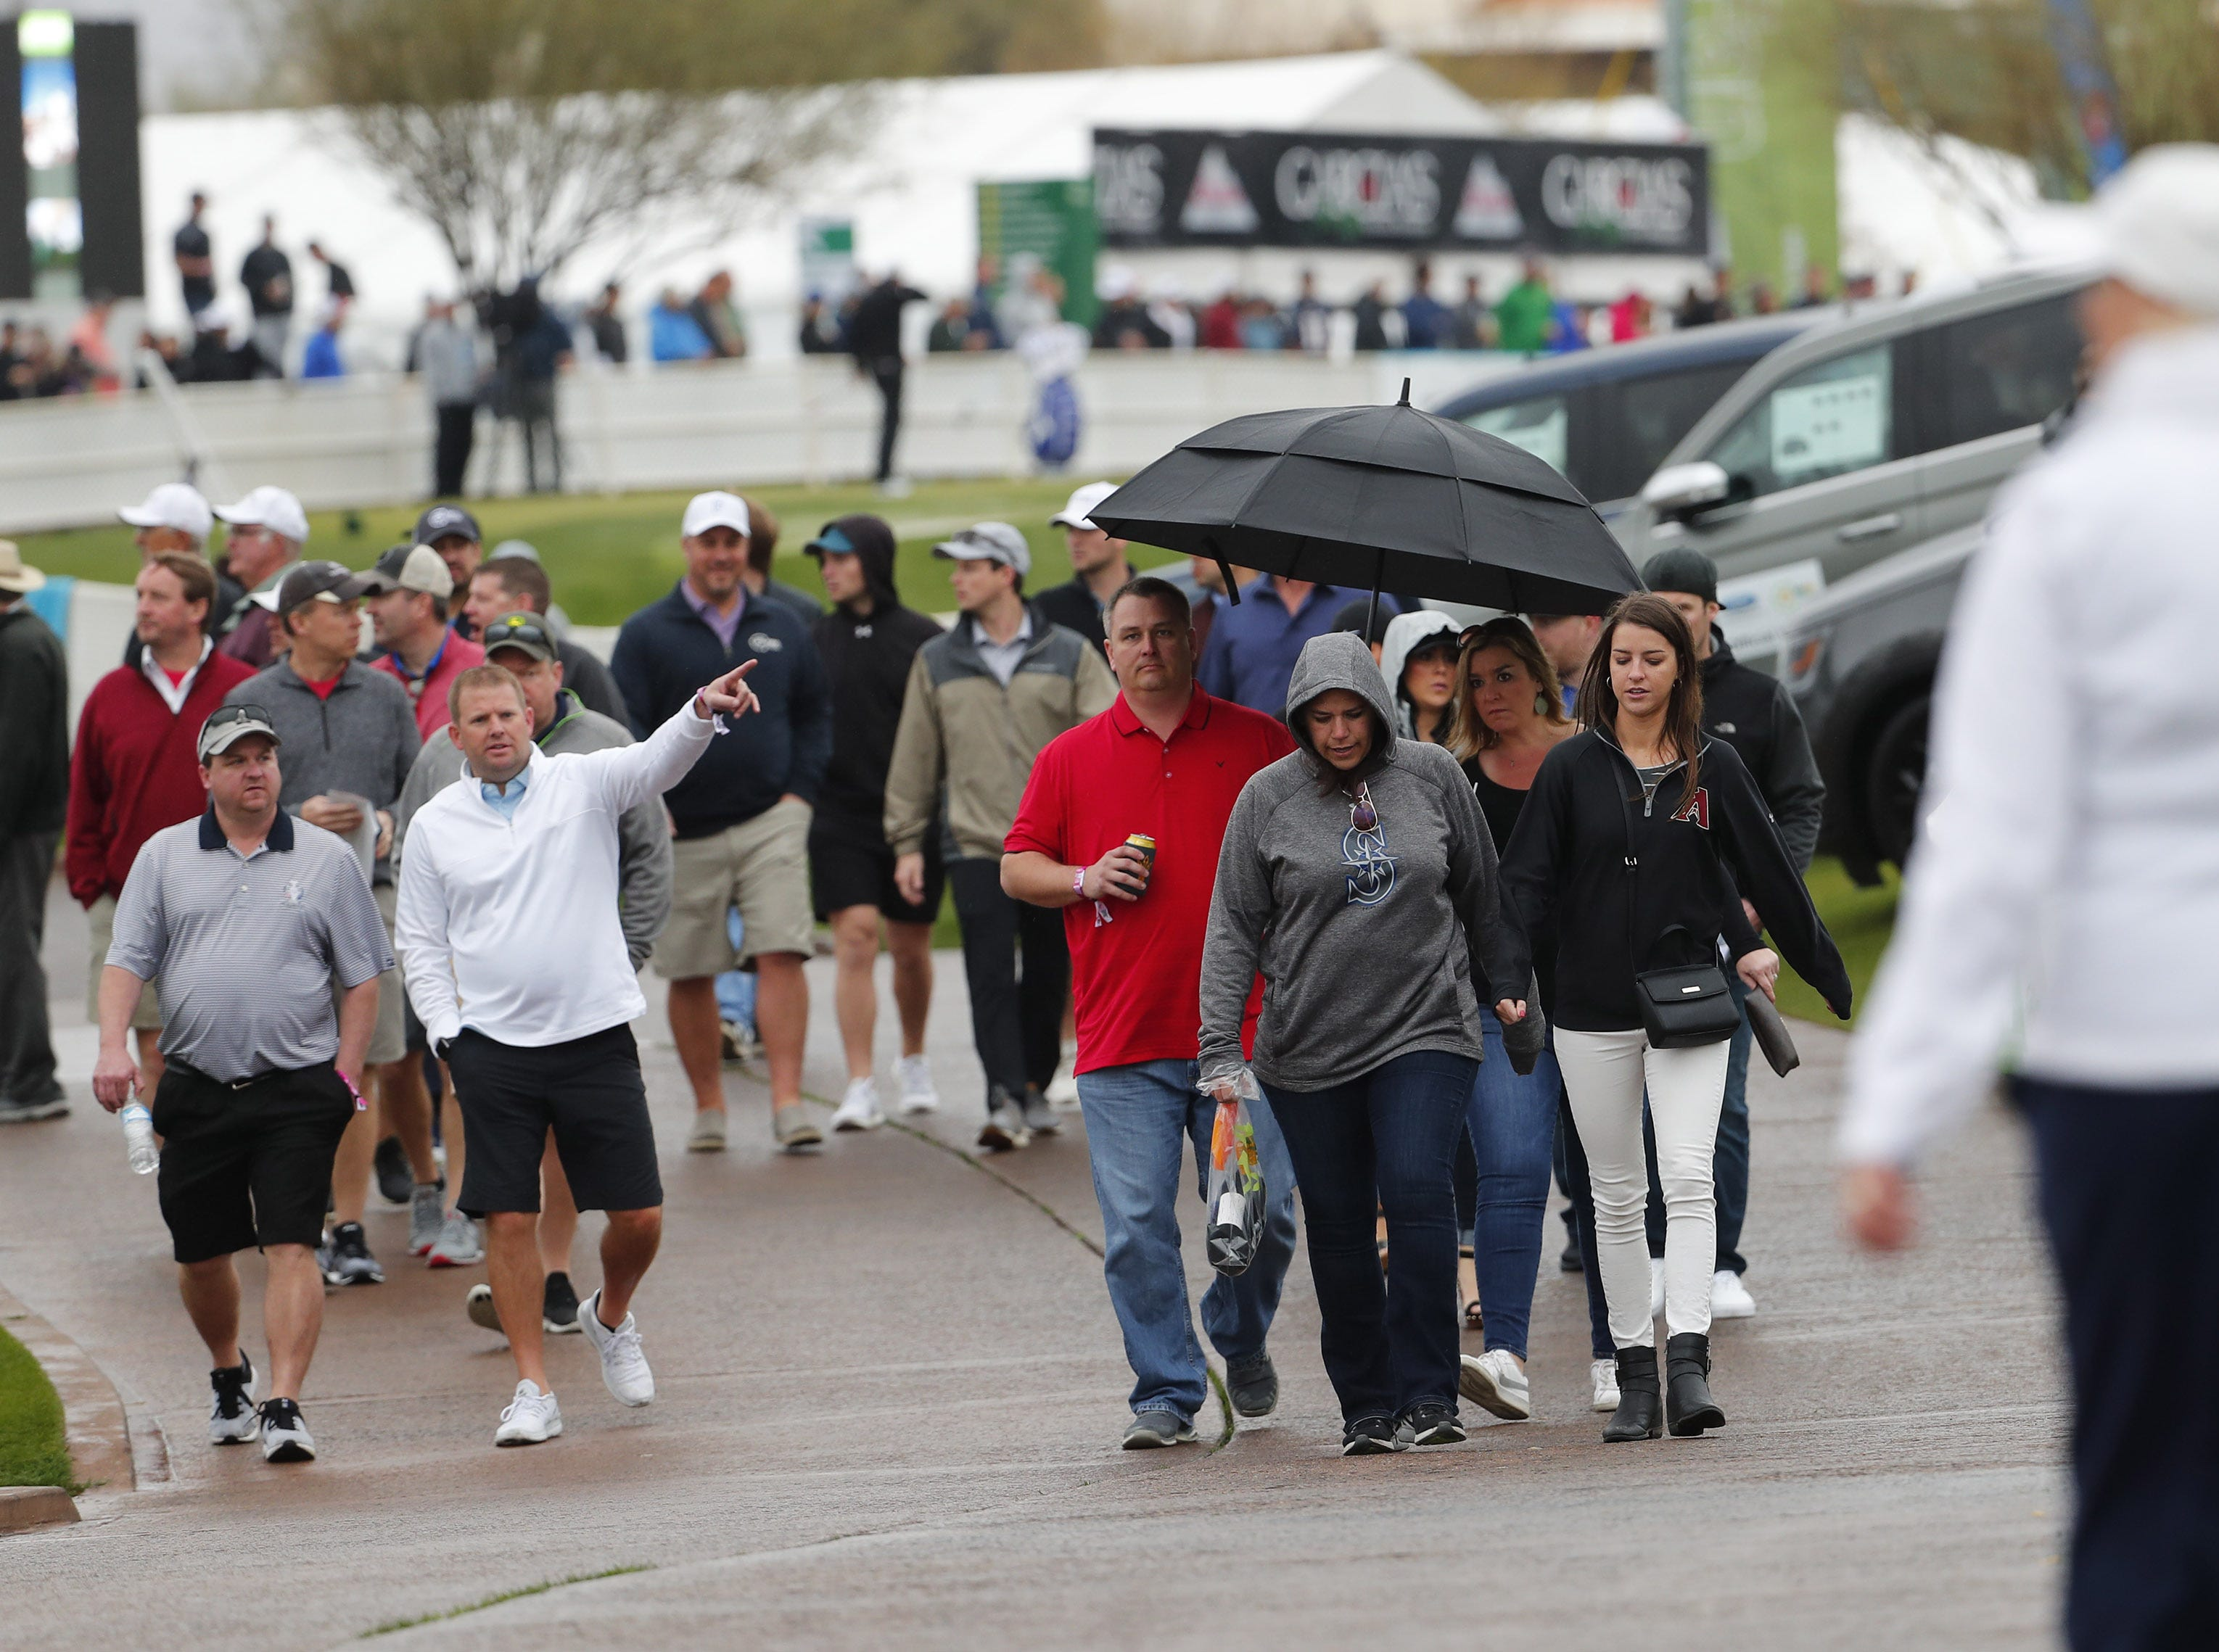 Fans try to stay dry while watching the final round of the Waste Management Phoenix Open at the TPC Scottsdale Feb. 3, 2019.